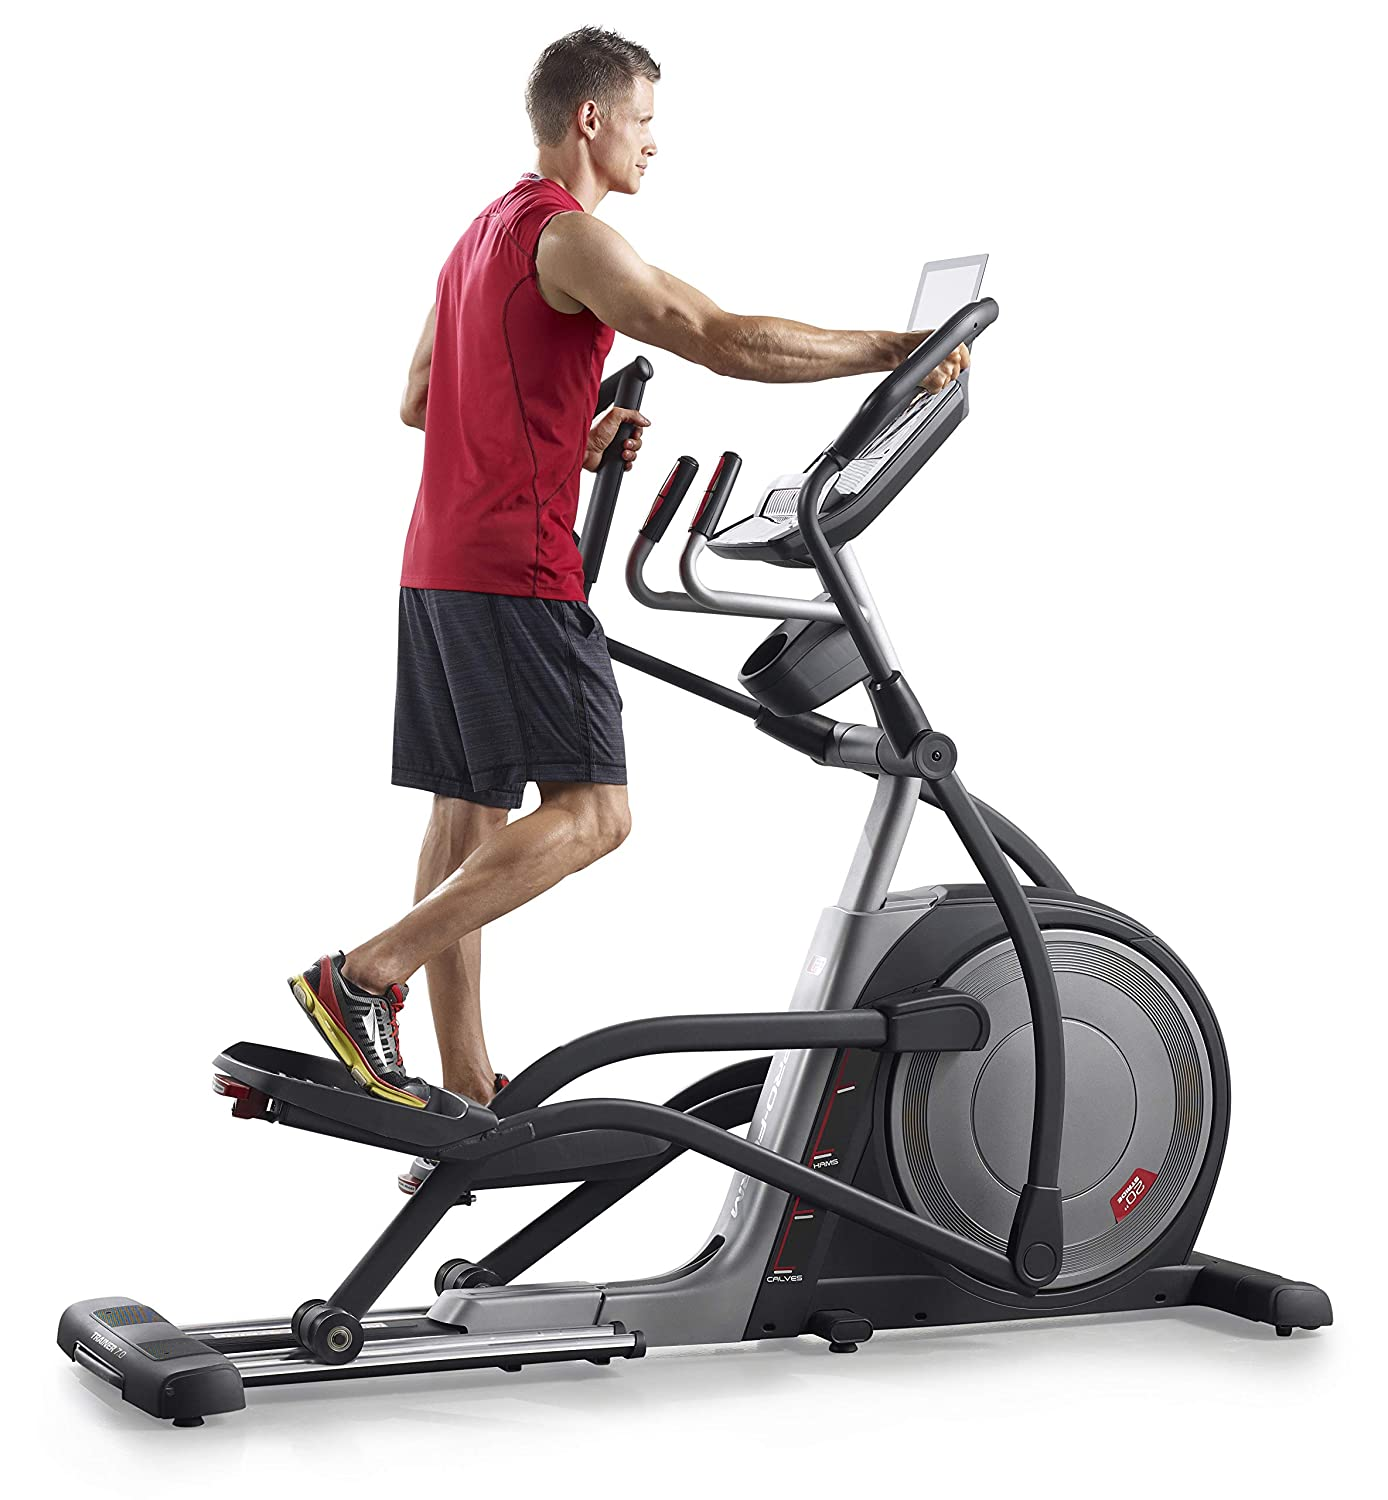 ProForm -Ellipticals und Crosstrainer -Trainer 7.0, 22 digitale Widerstands-Level,28 Workouts,10% Steigung ,MP3-Anschluss, Lautsprecher-PFEVEL10716